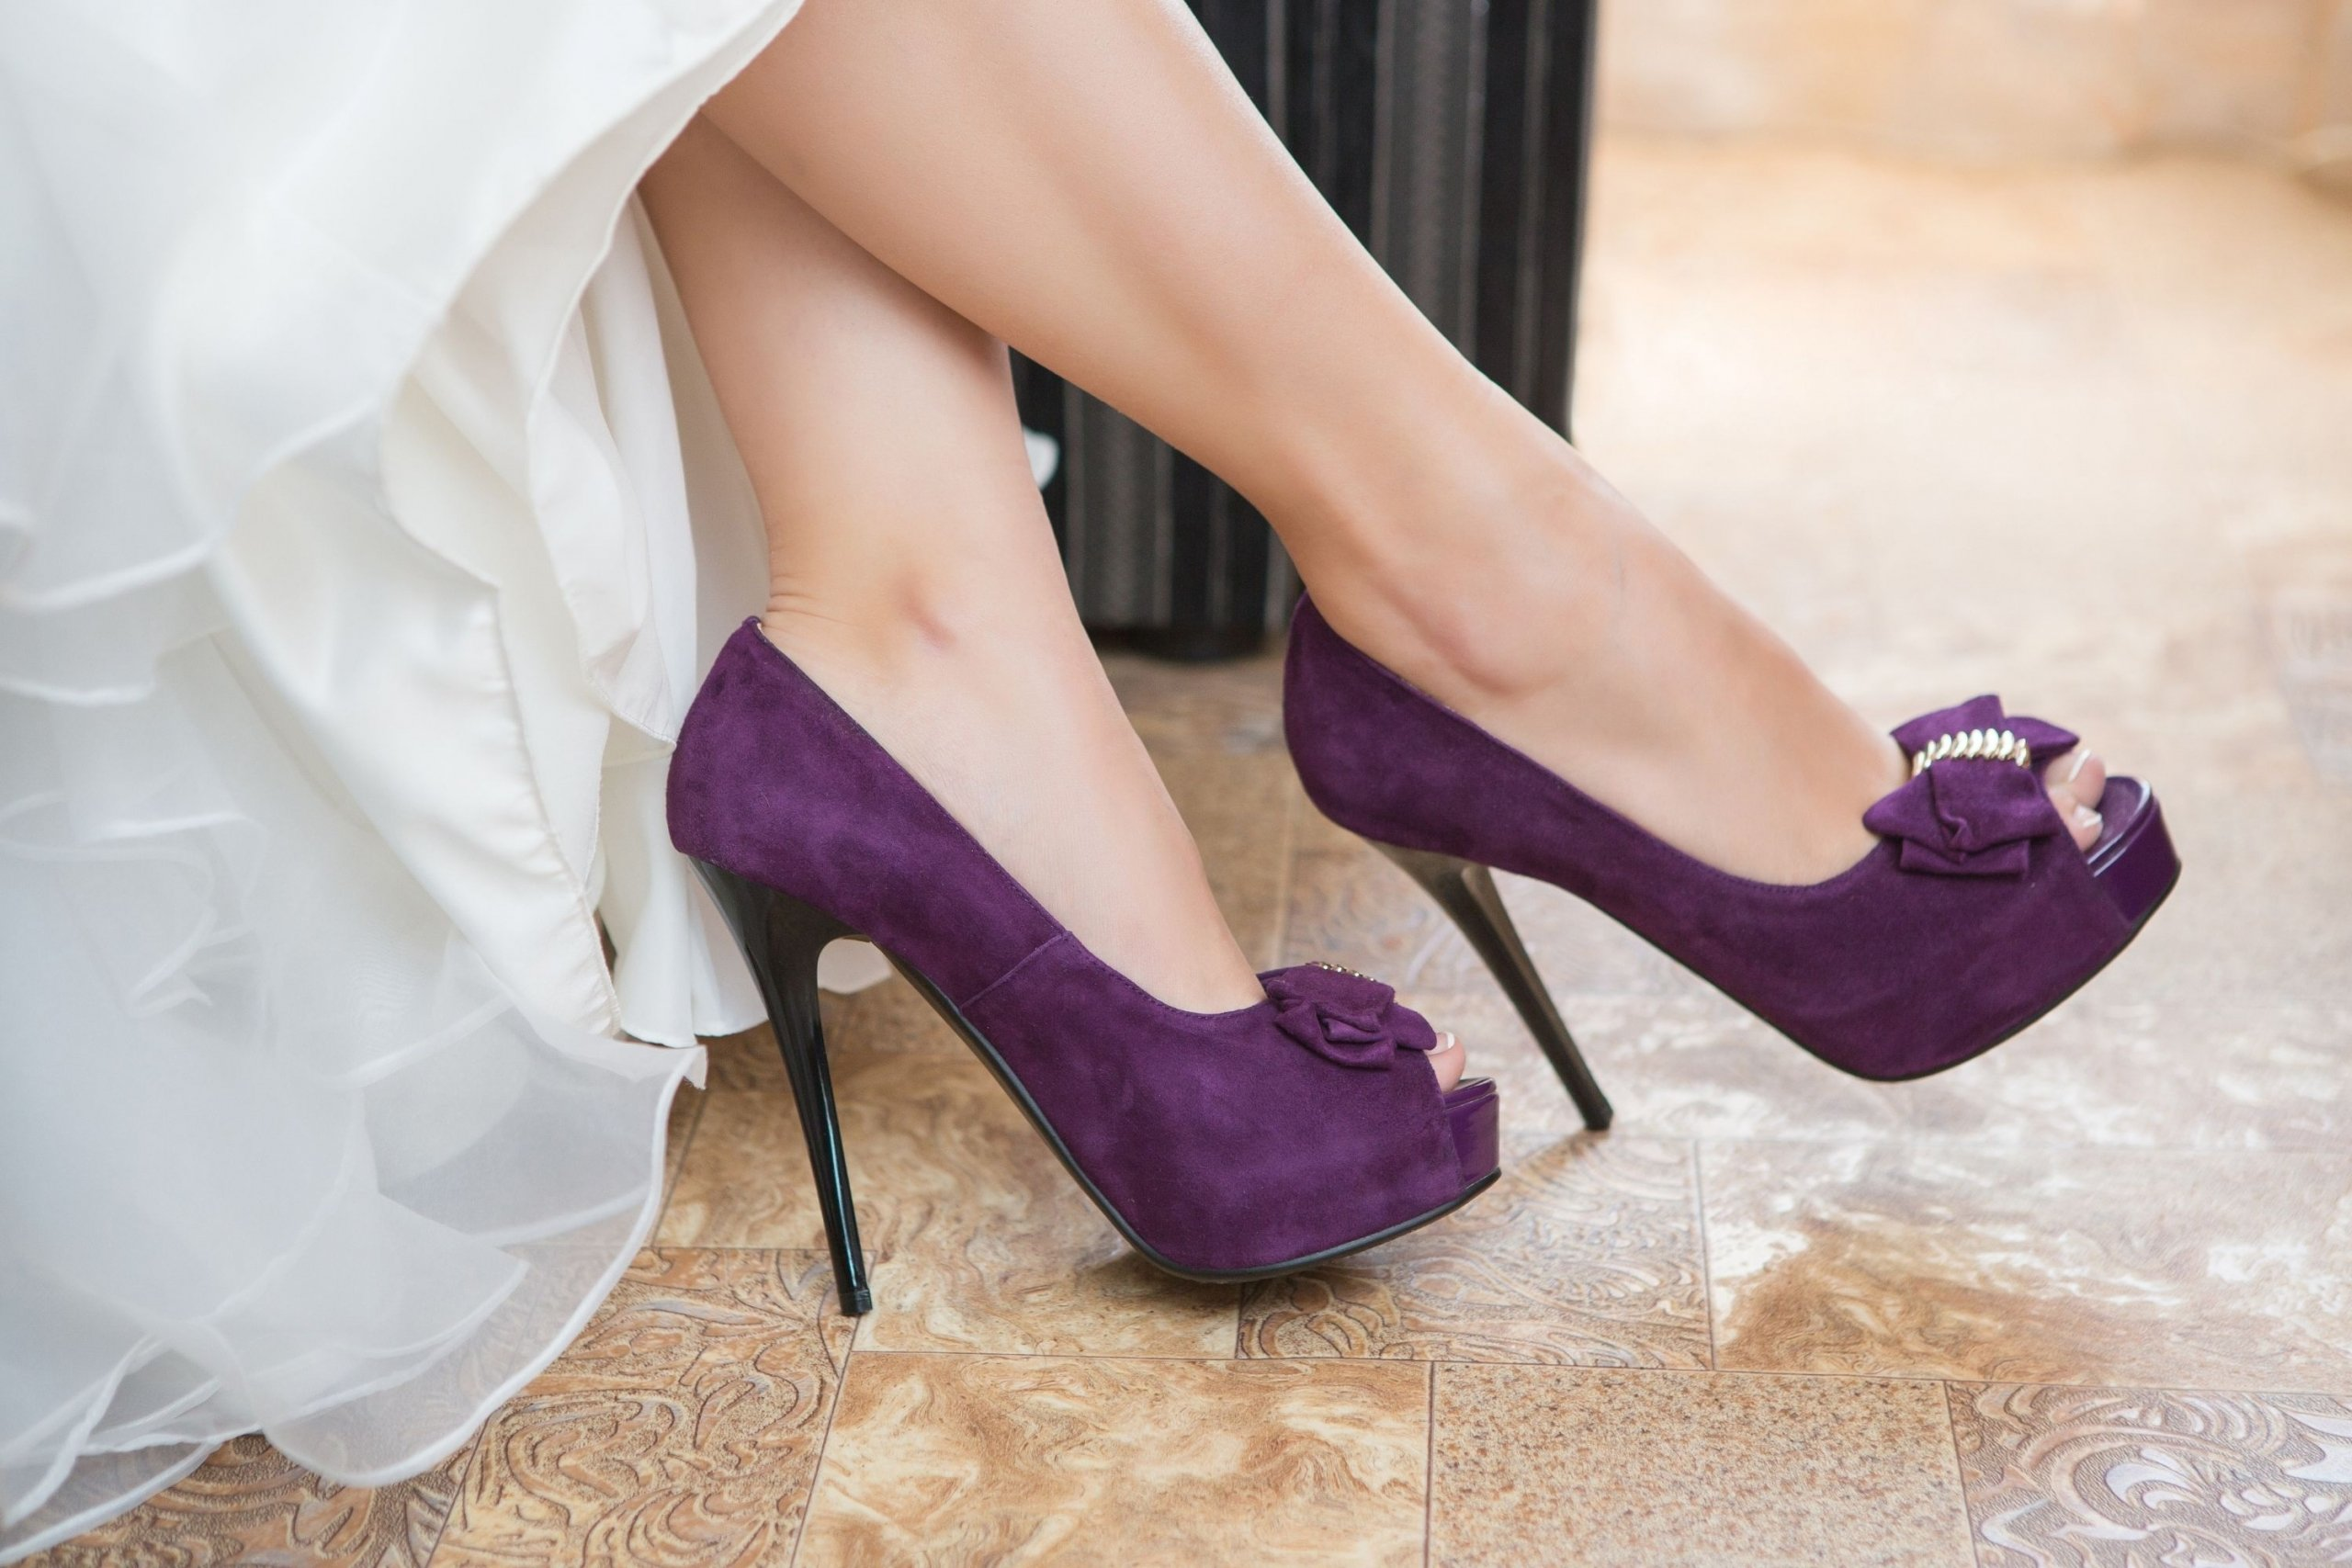 A woman's feet in purple open-toed high heel shoes